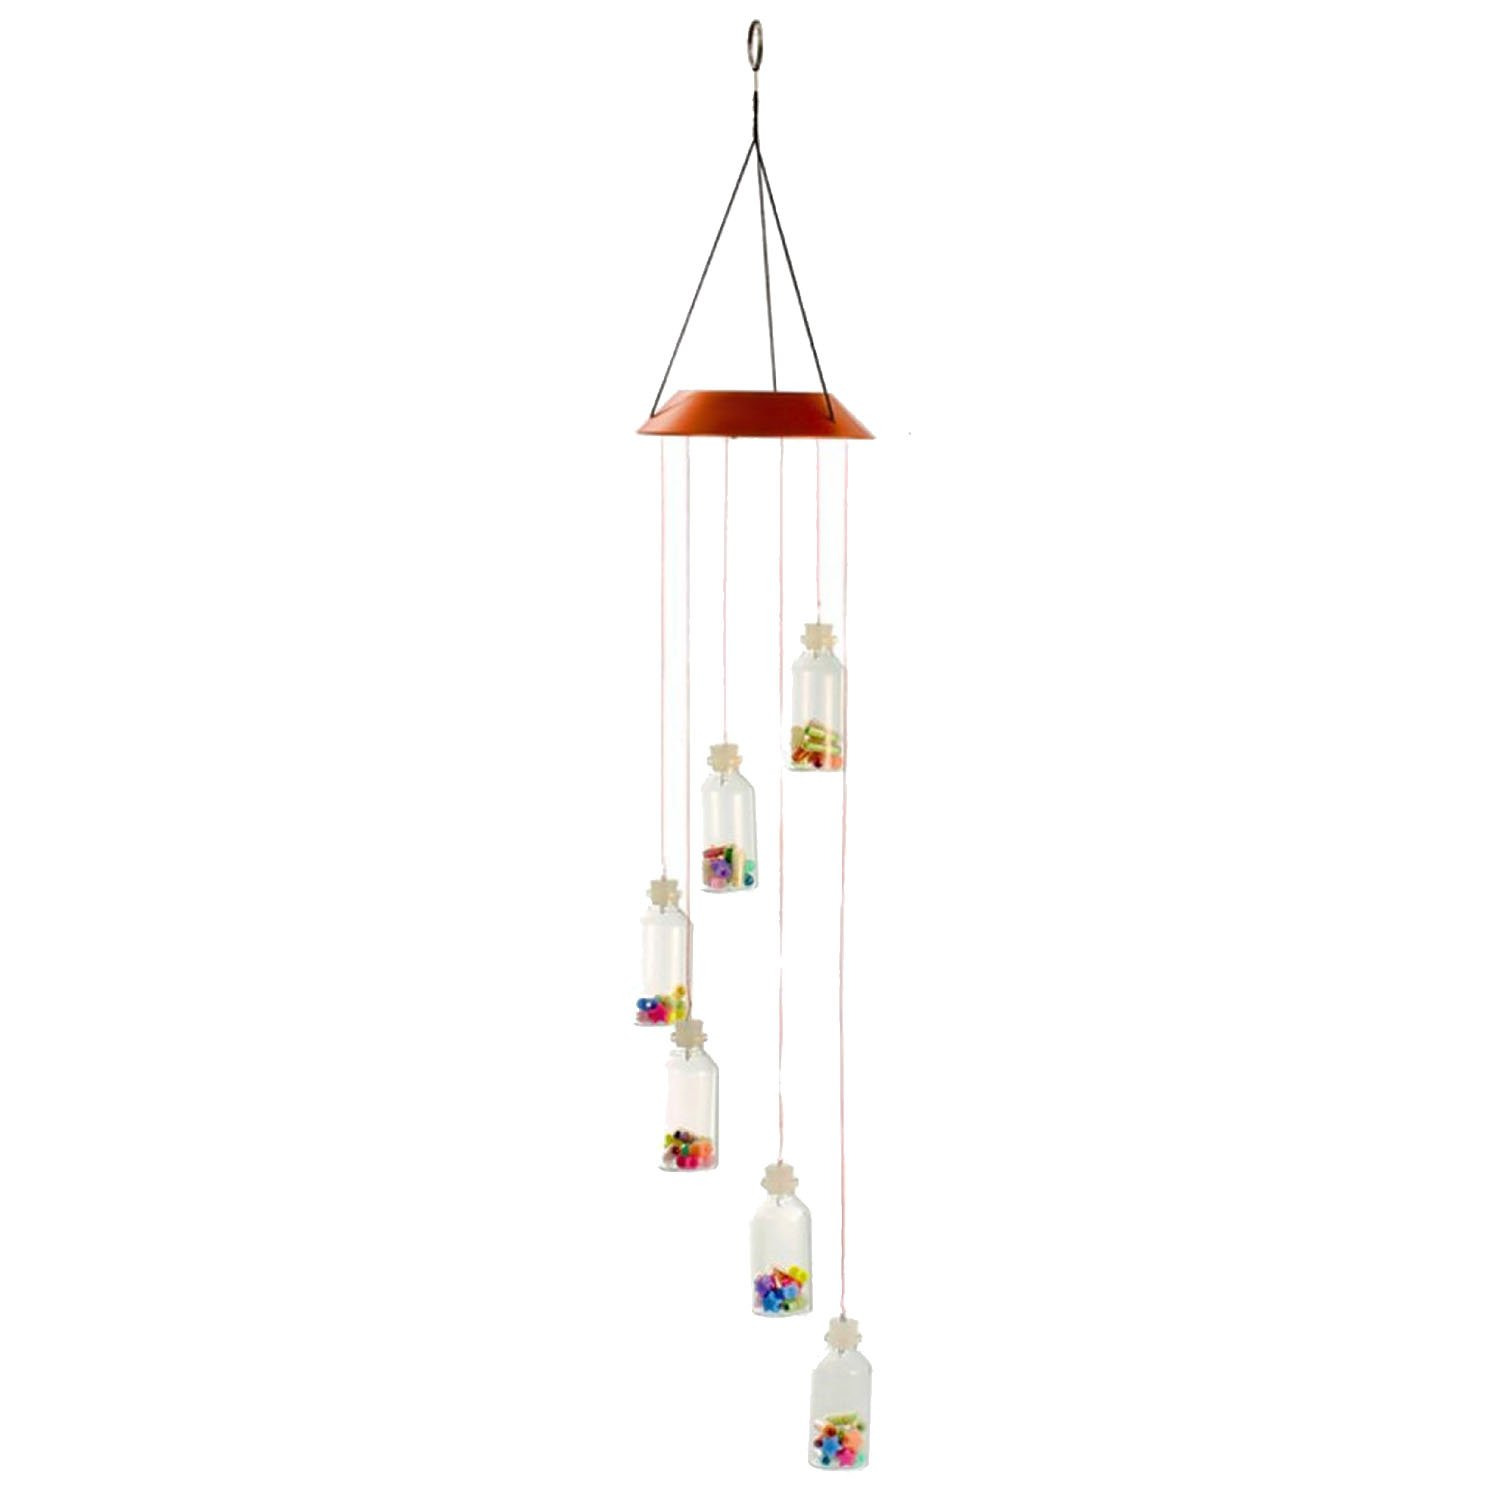 Gosear Solar LED Light Hanging Wind Chime Changing Color for Lawn Yard Garden Home Decoration Butterfly Style